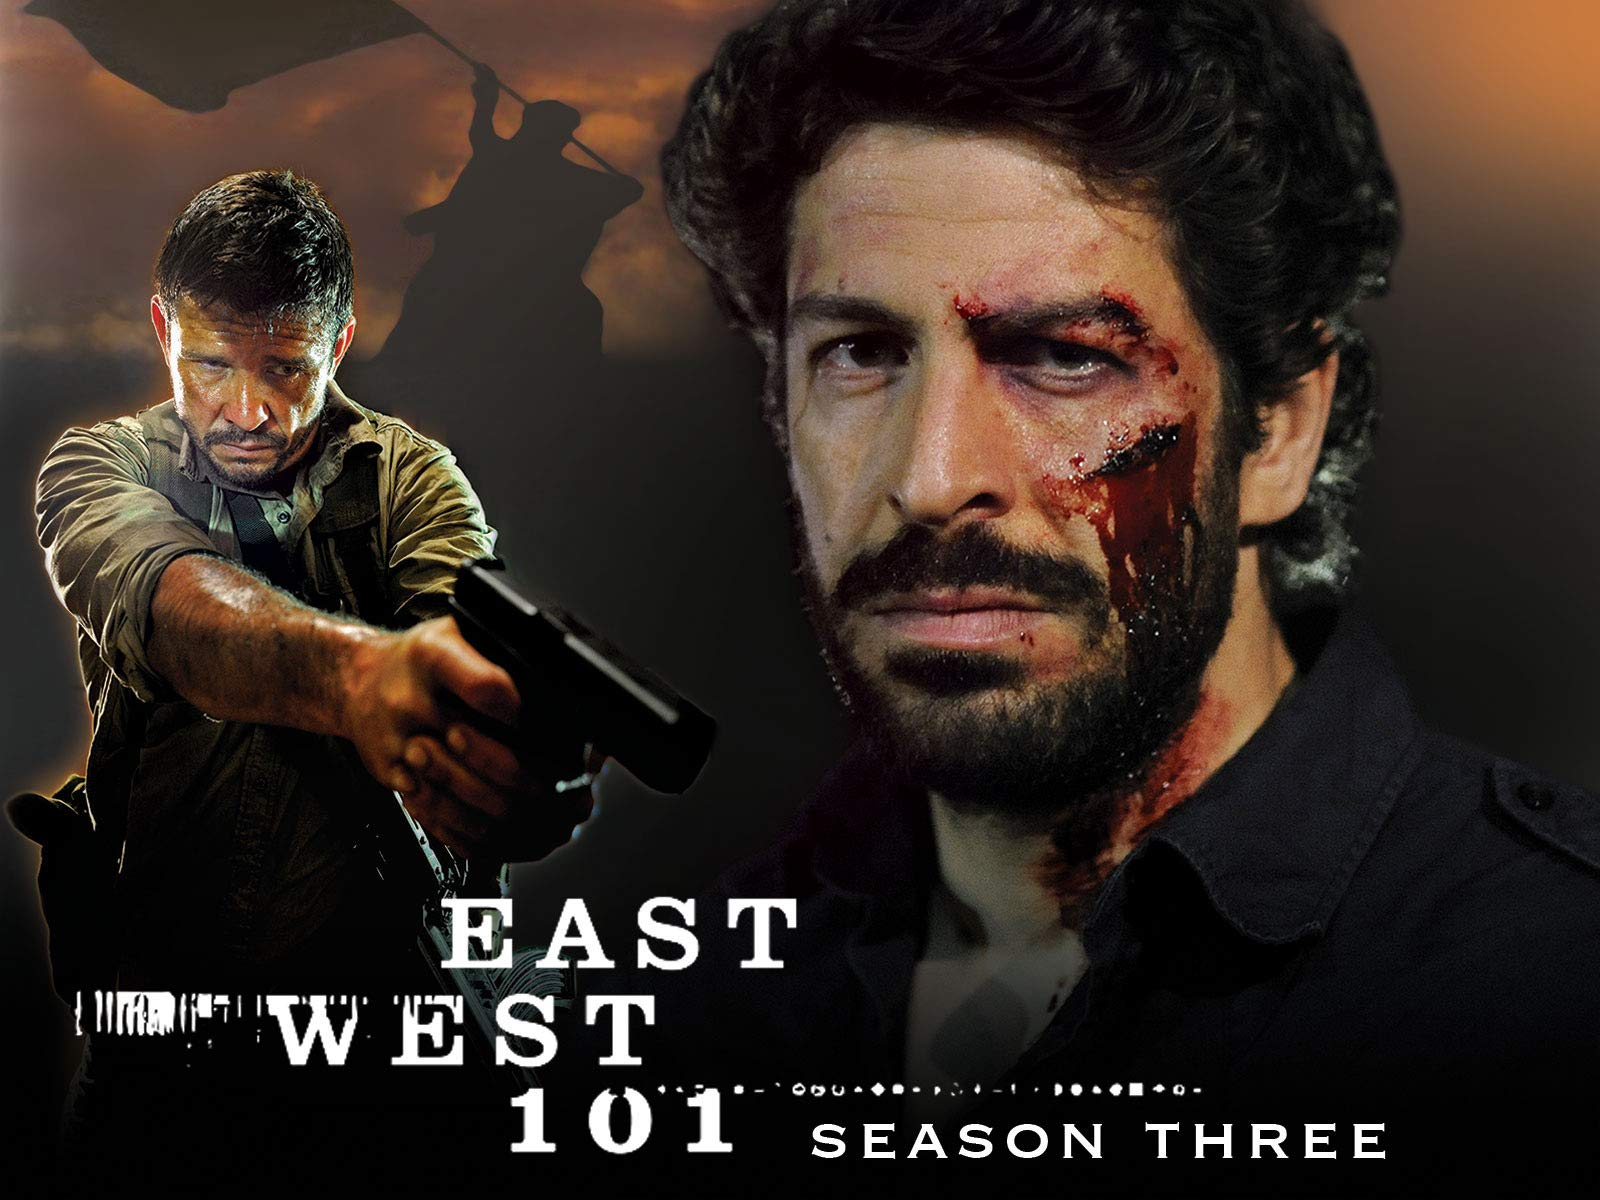 East West 101 - Season 3